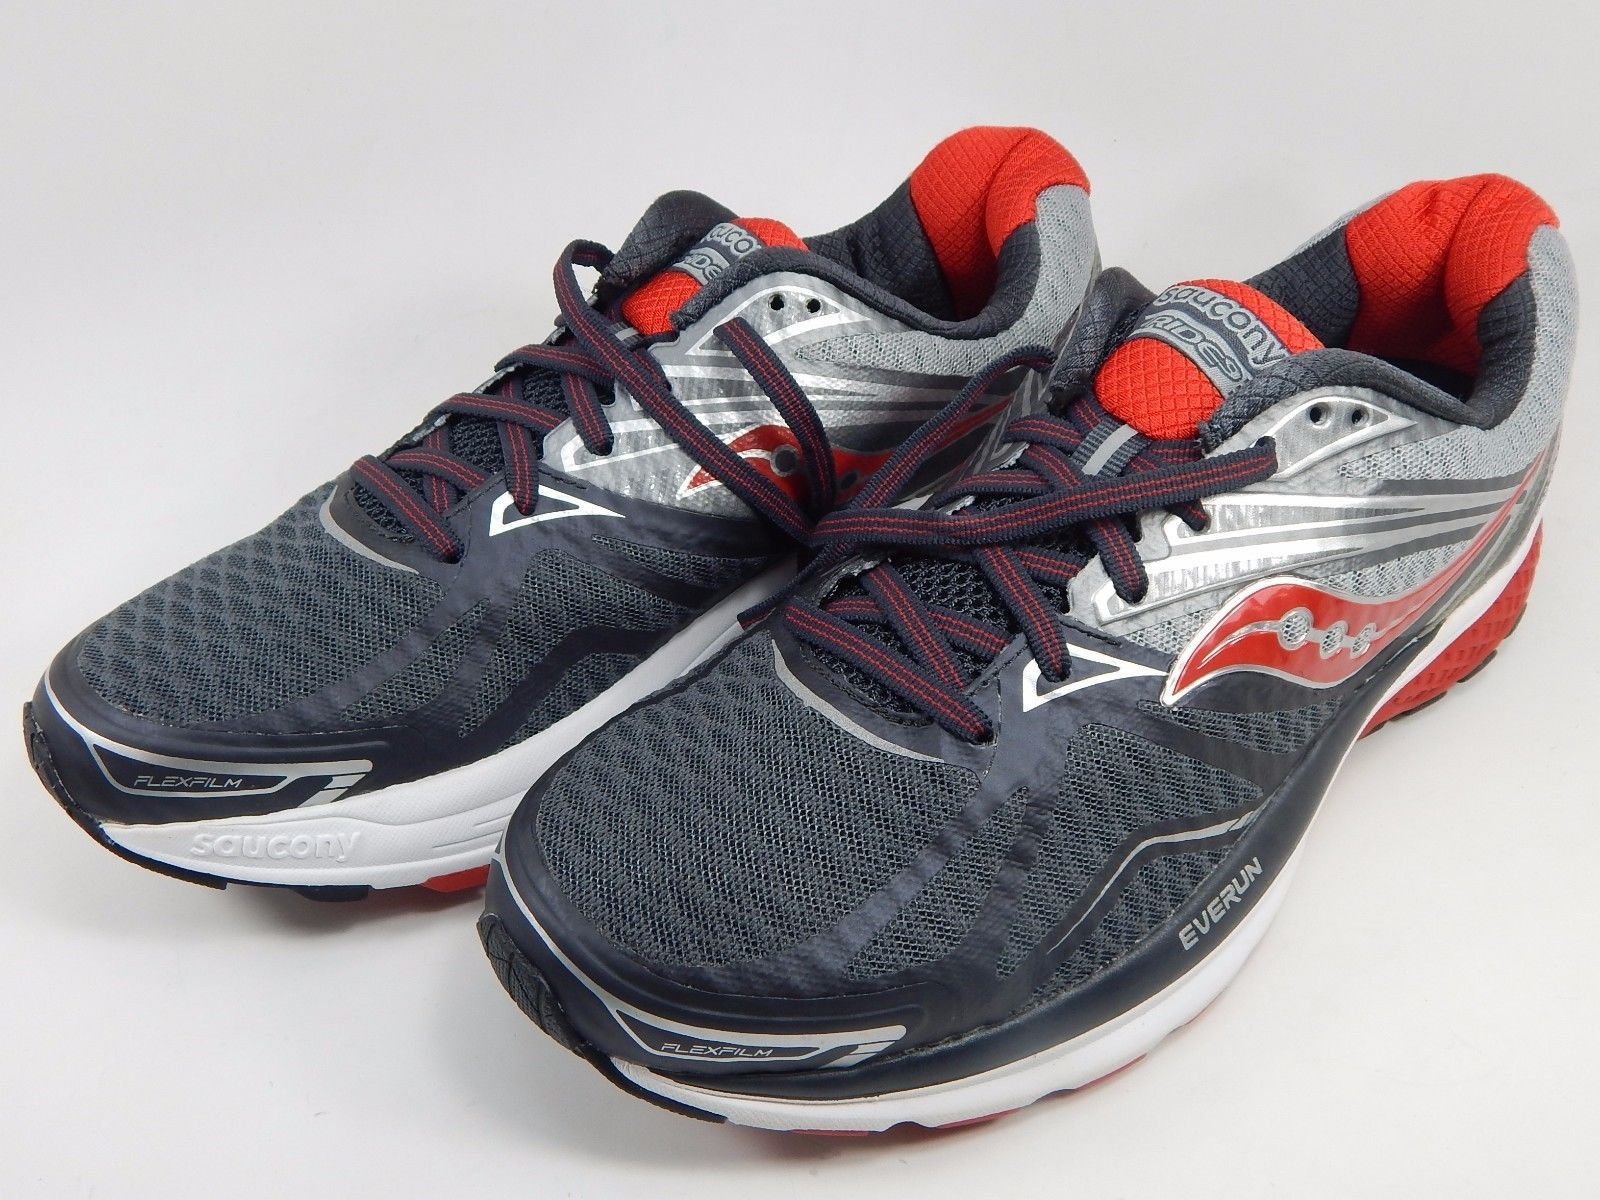 Saucony Ride 9 Men's Running Shoes Size US 9 M (D) EU 42.5 Grey Red S20318-1